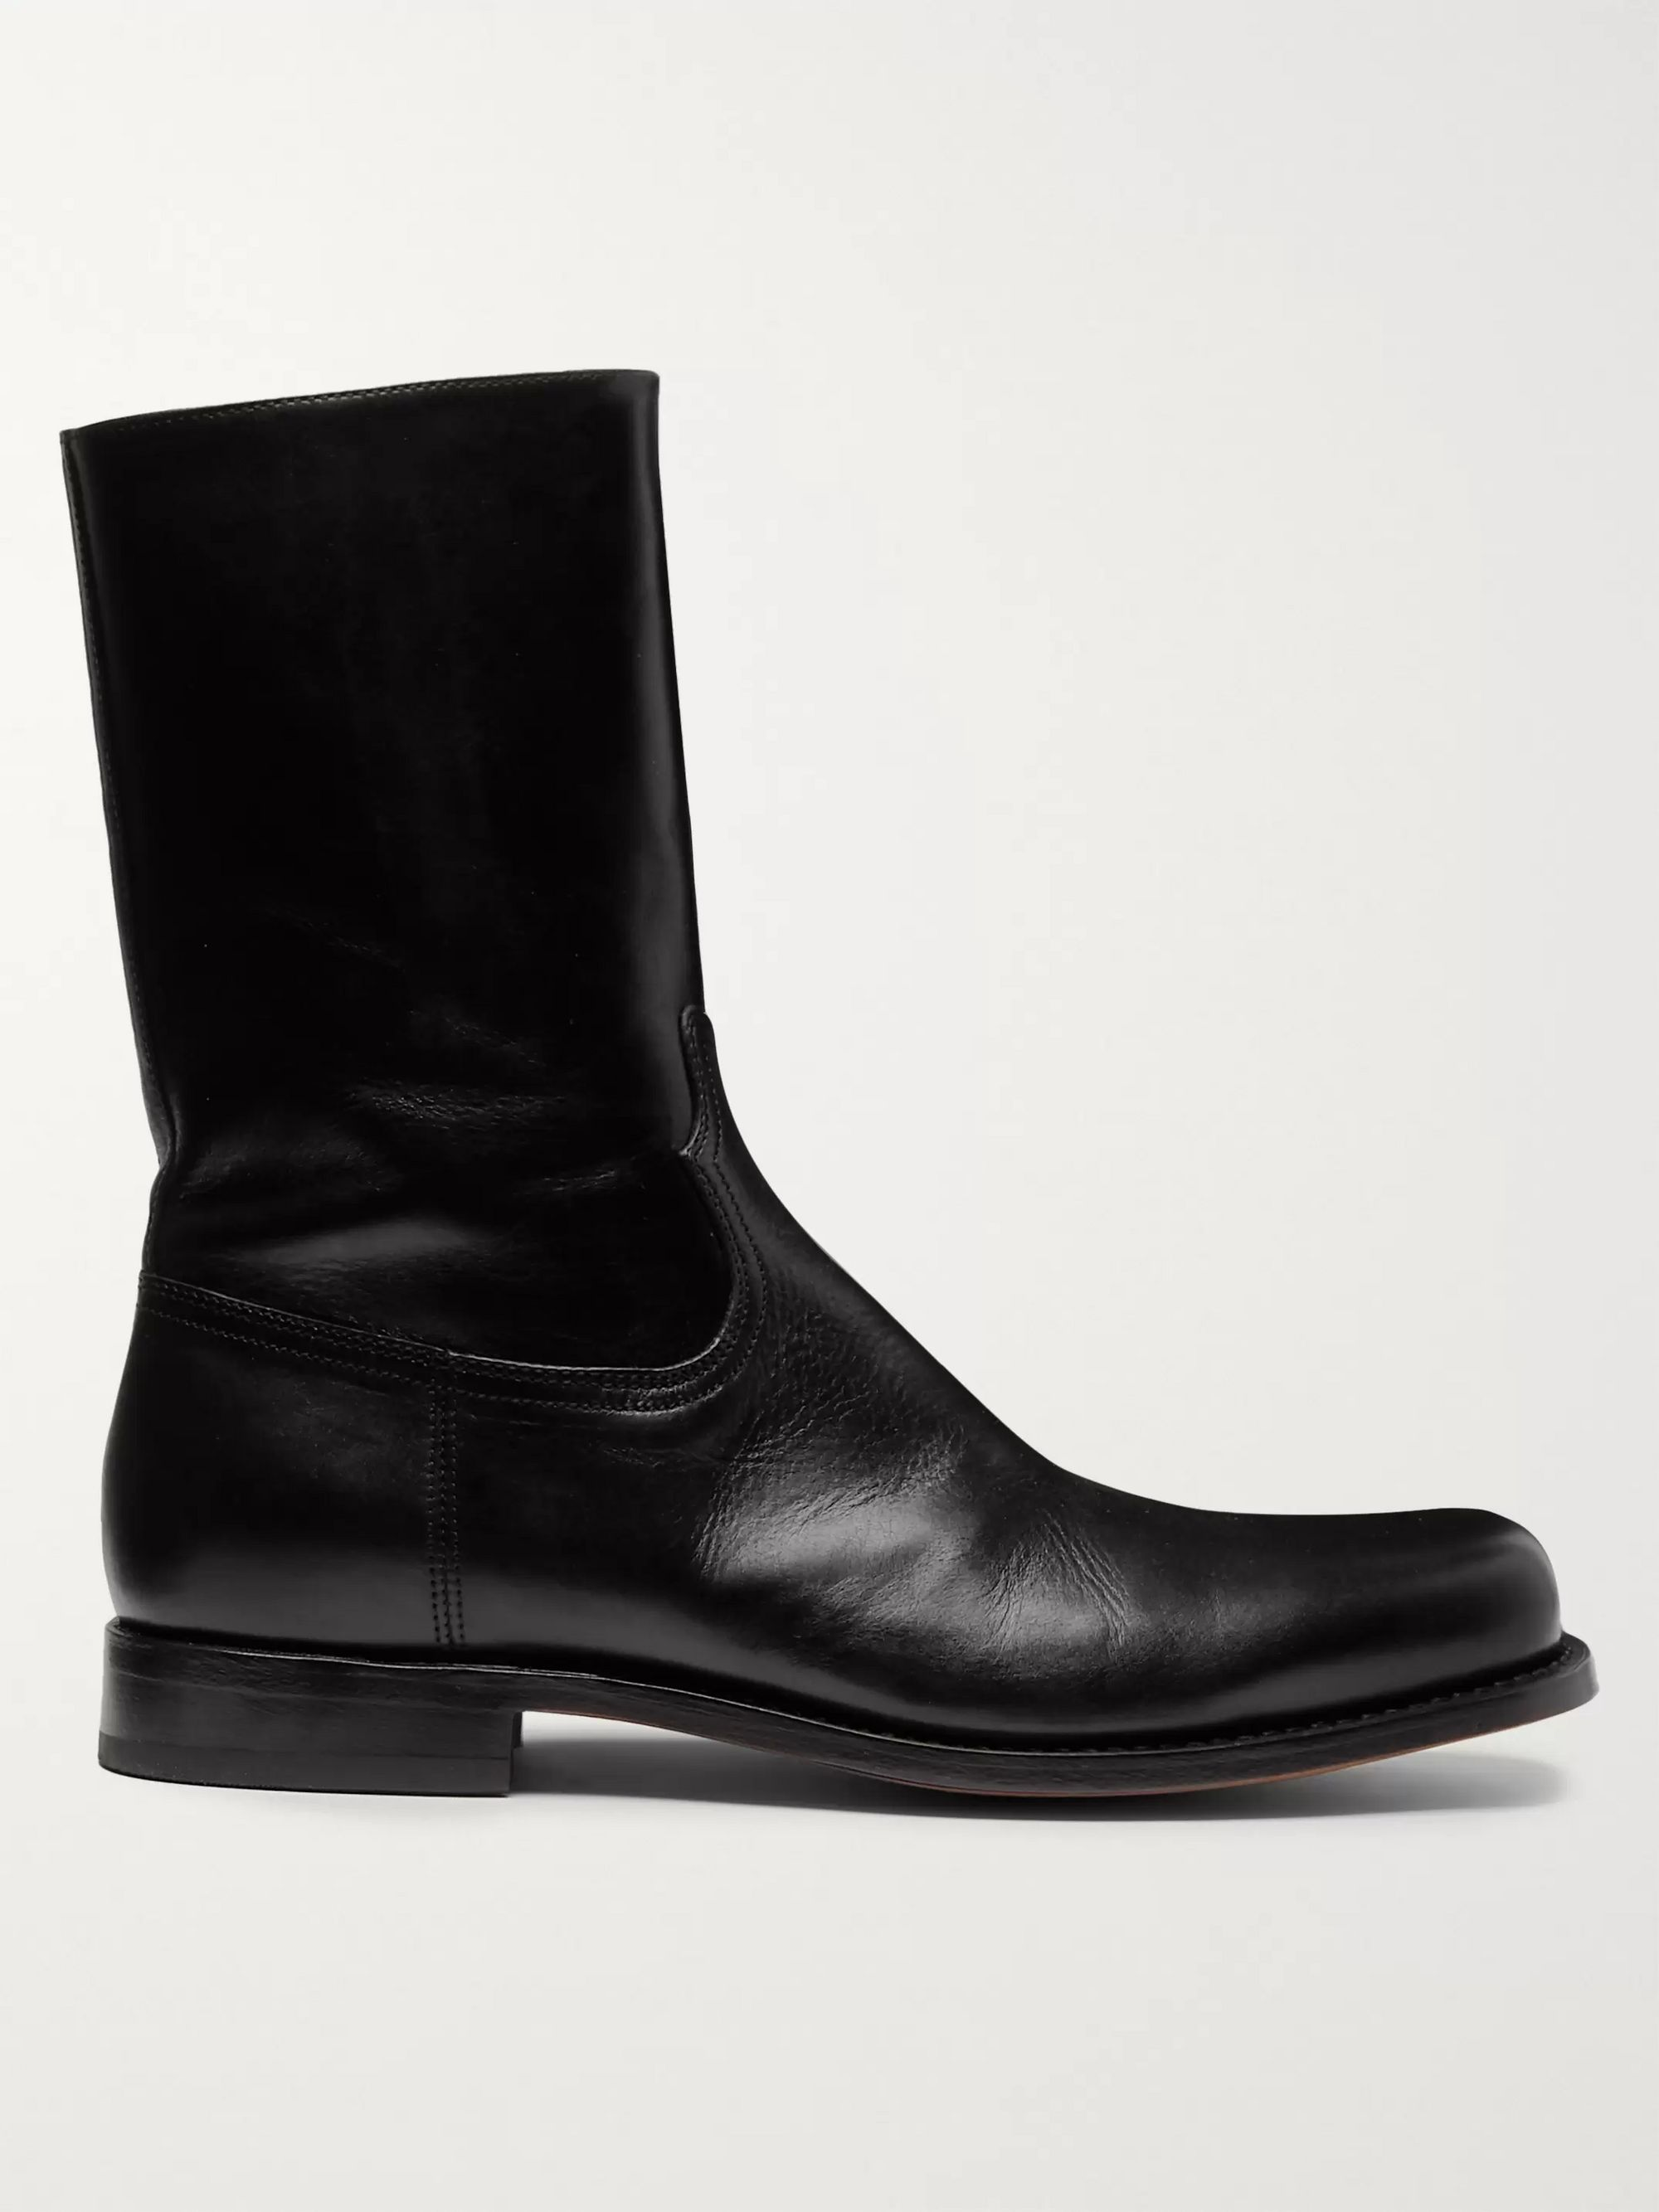 Dries Van Noten Leather Boots